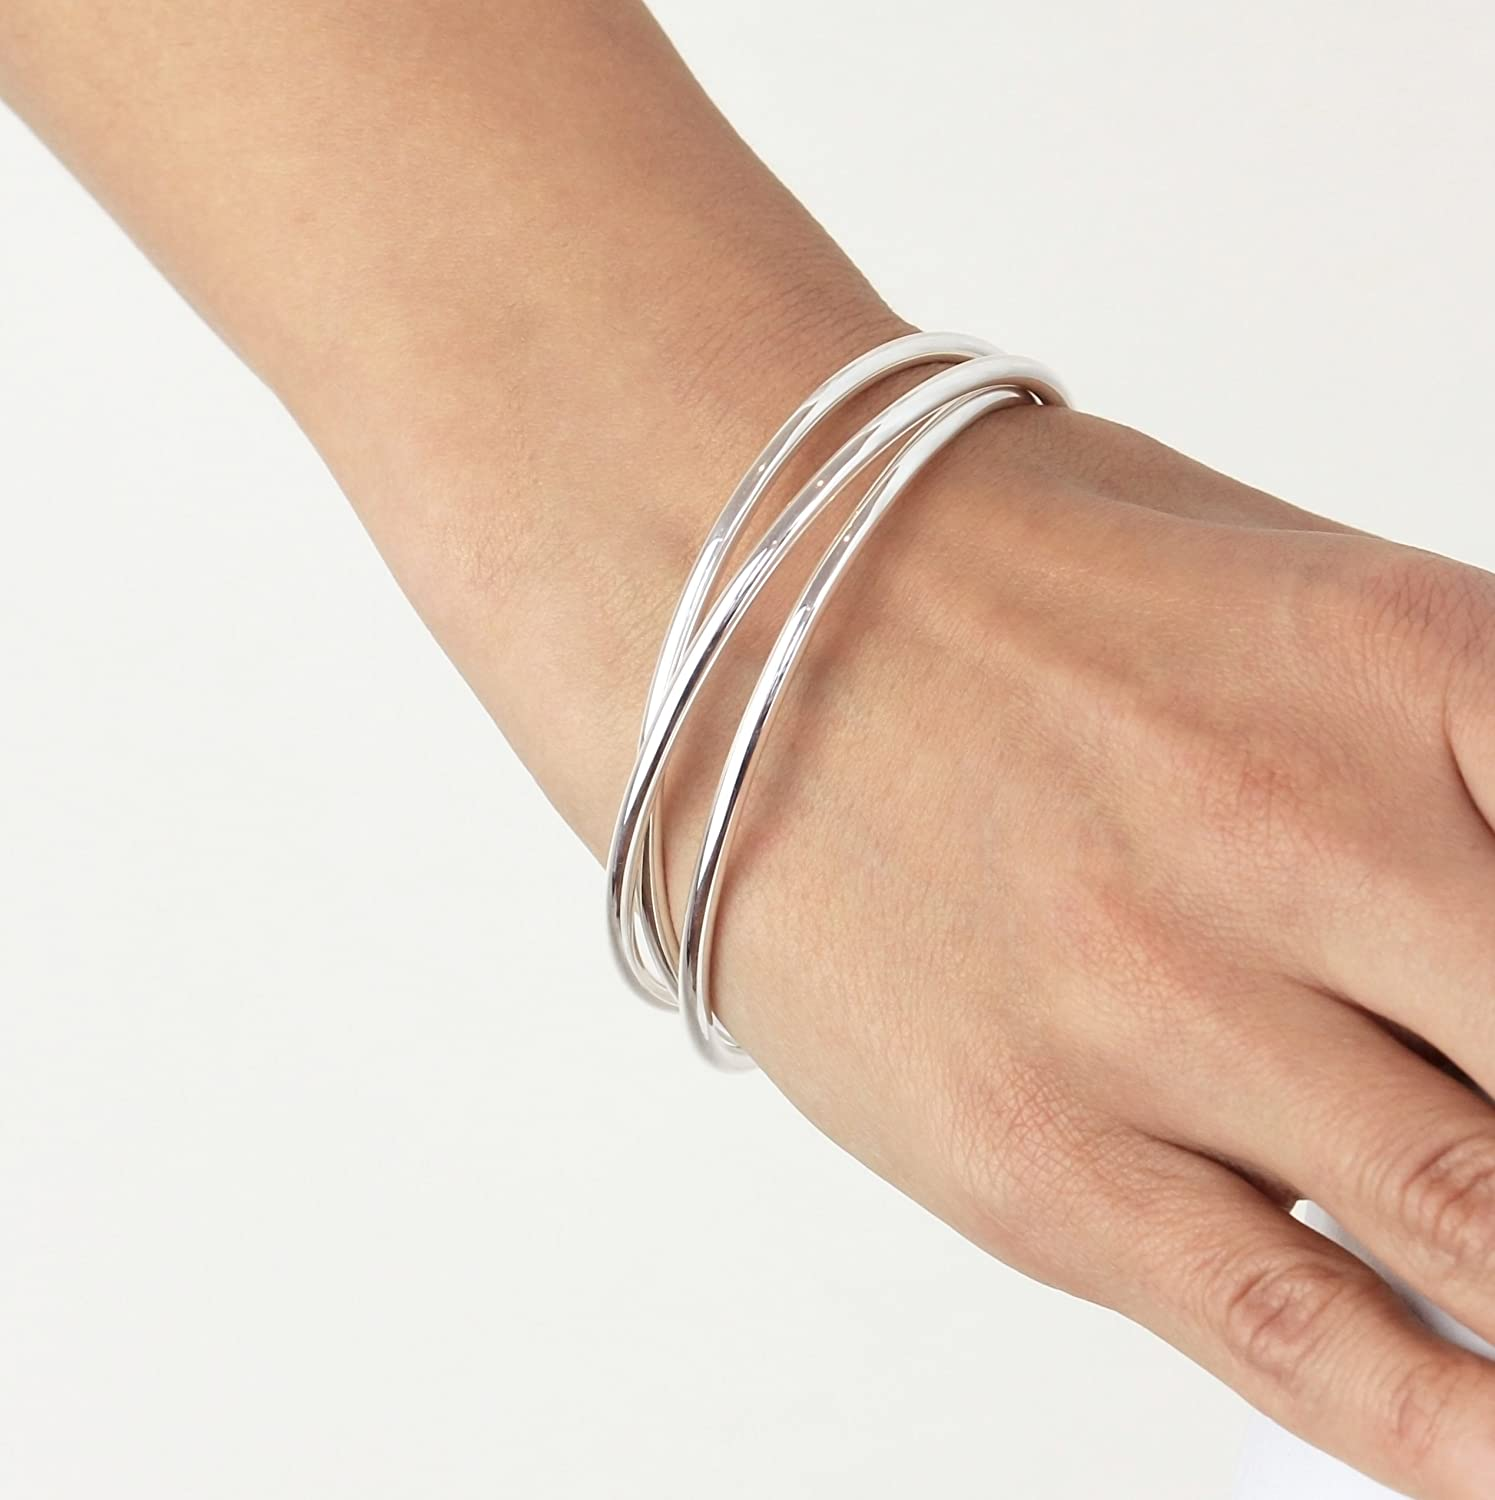 buy nadinejewelry stack hand handmade bangles custom ban by bangle thin bracelets crafted hammered made silver sterling